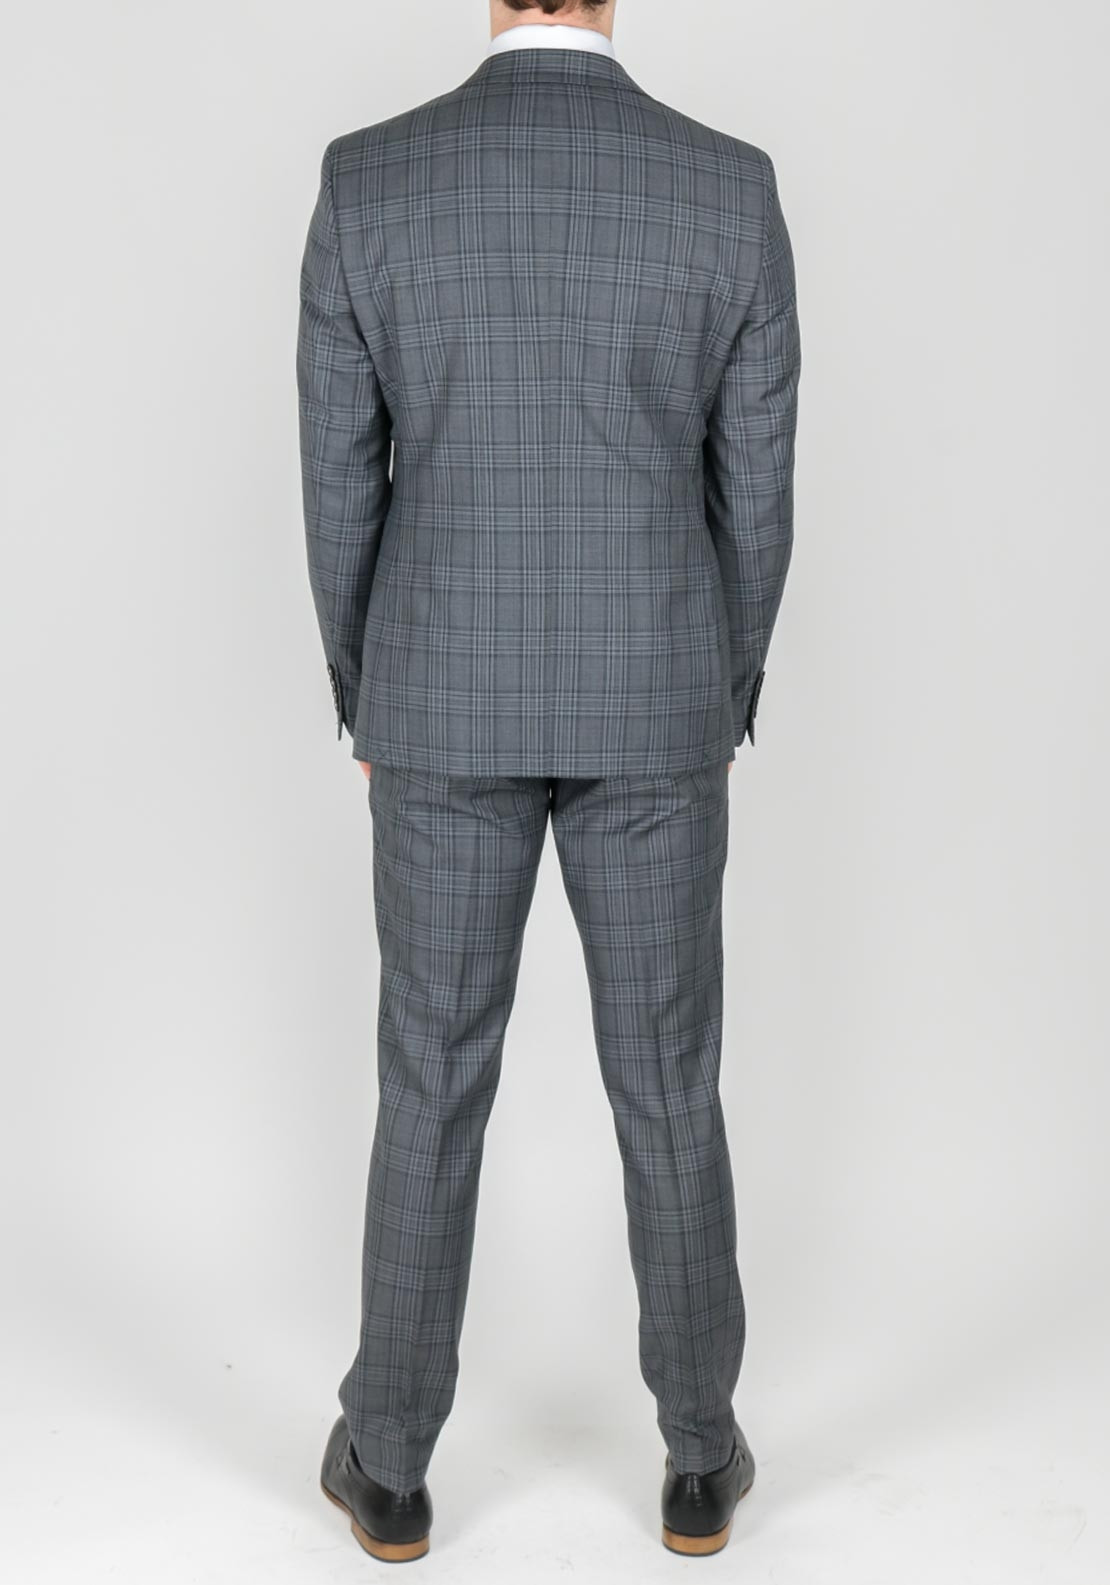 dcc74bc8b91aa2 Remus Uomo Wool Grey Tartan Check 3 Piece Suit | McElhinneys